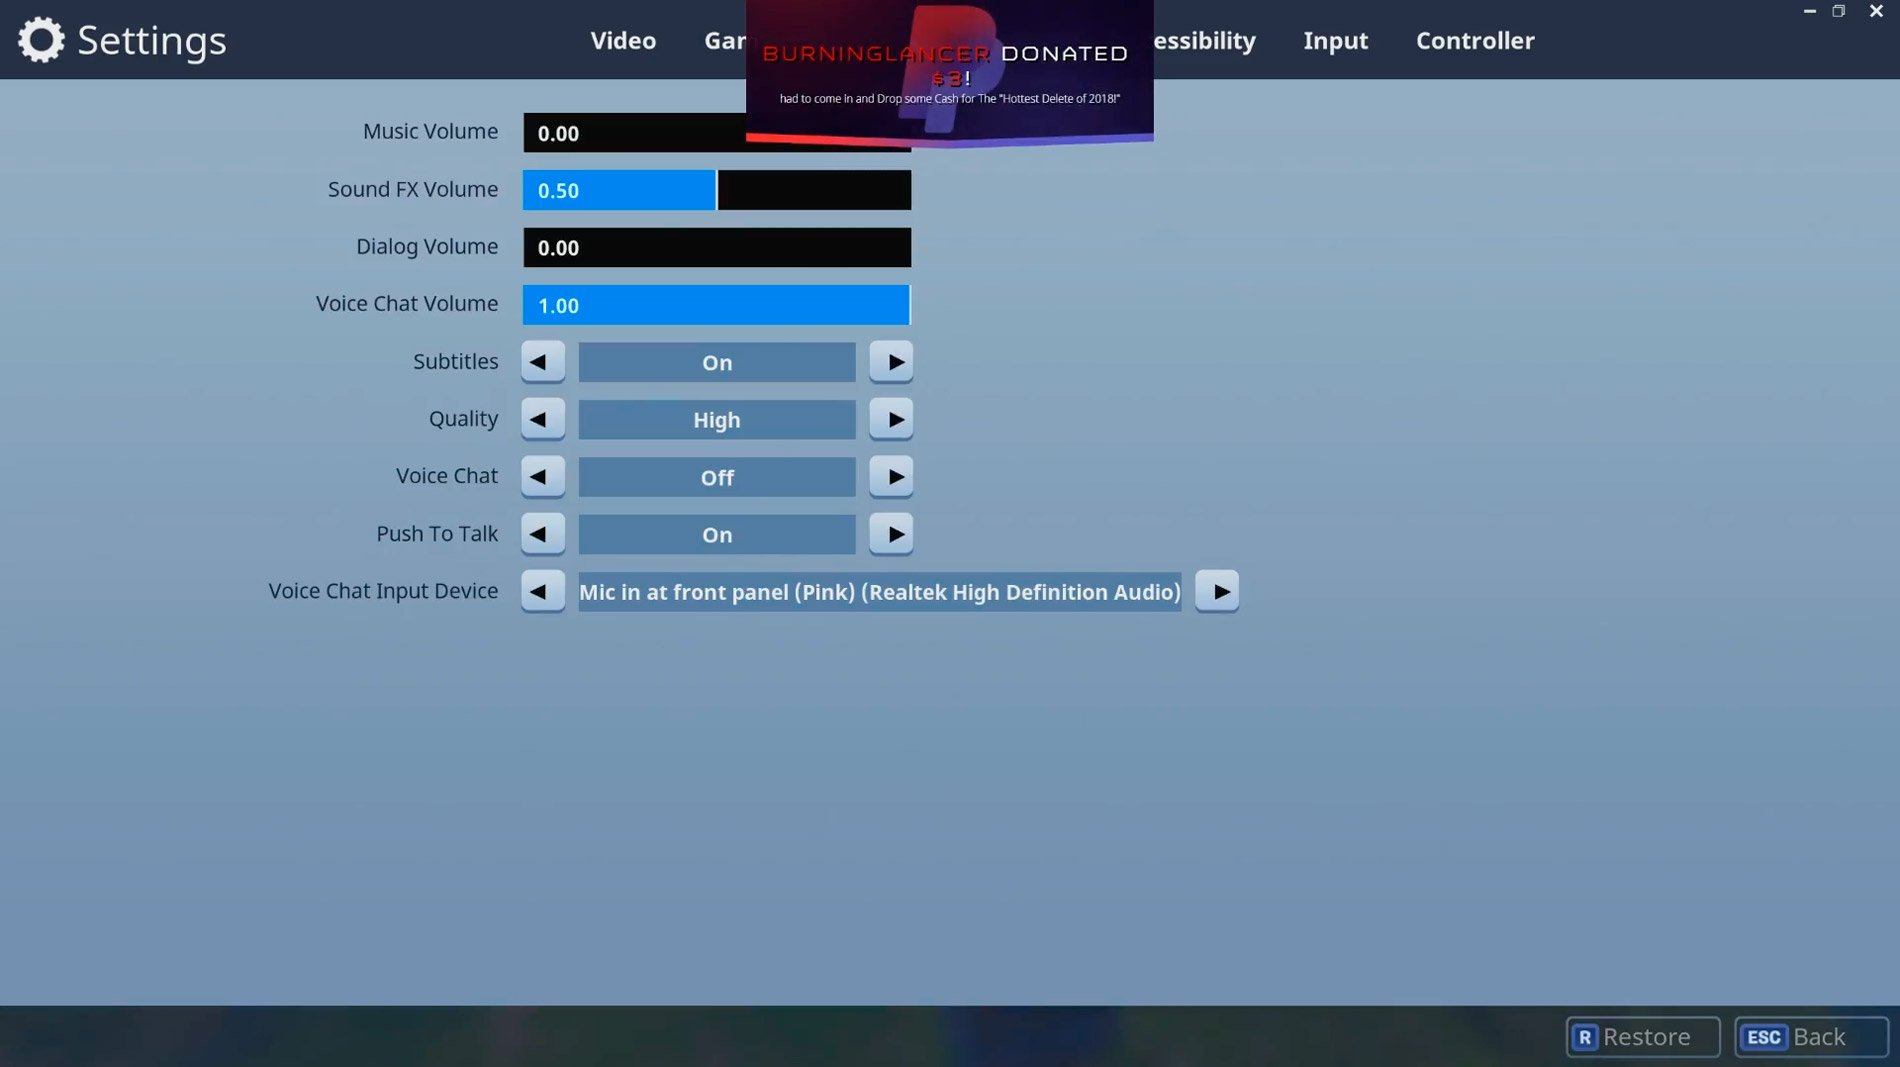 DrLupo Fortnite Settings, Keybinds, Config & Gear 2019